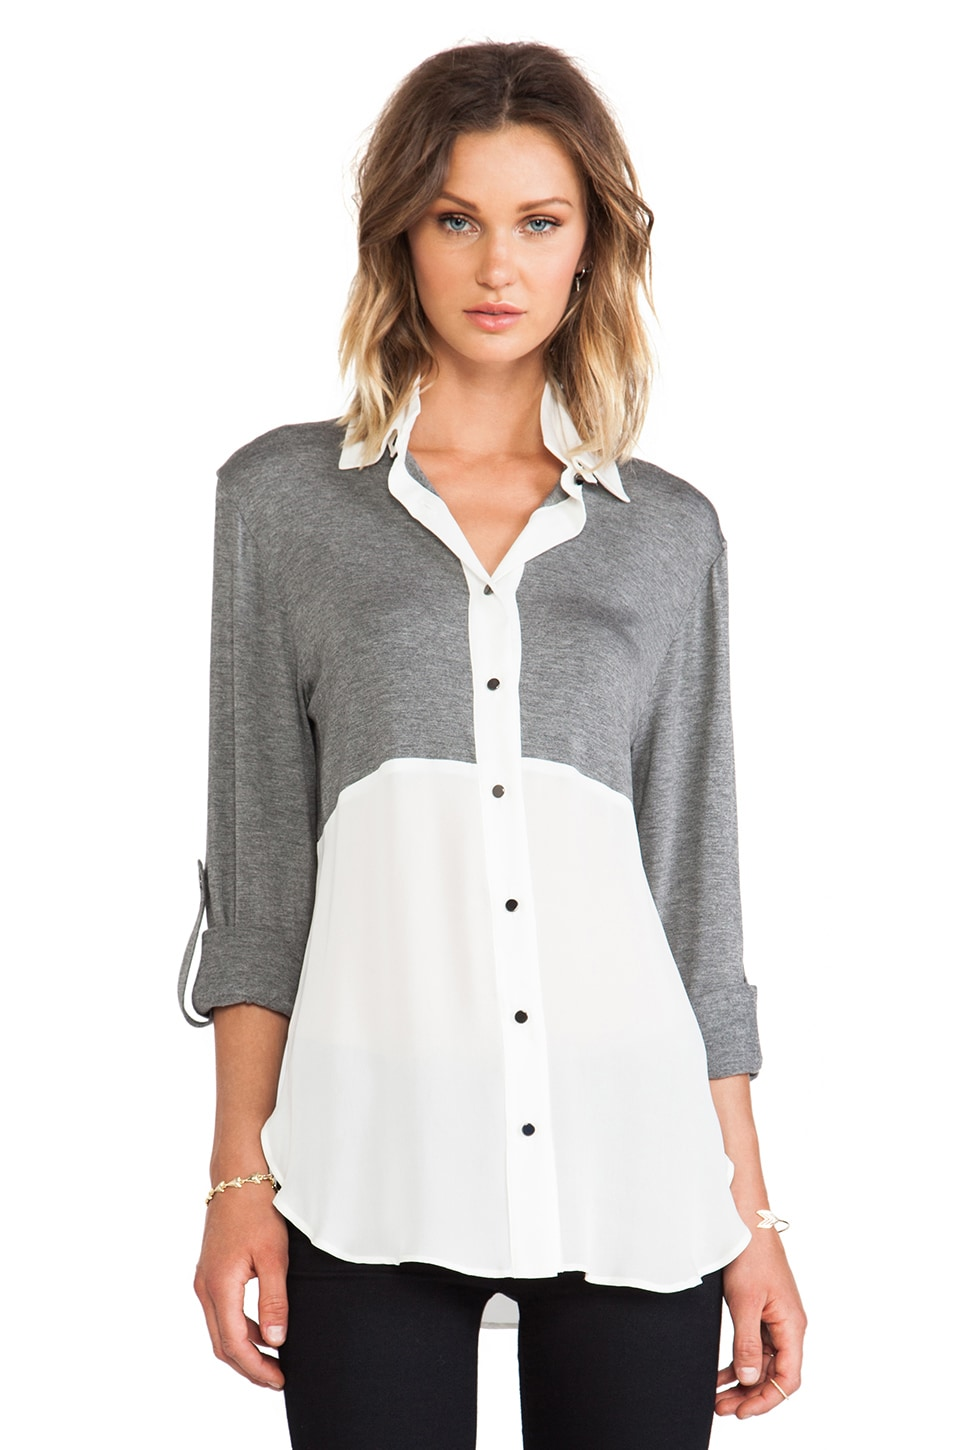 DEREK LAM 10 CROSBY Double Collar Shirt in Grey Melange/White